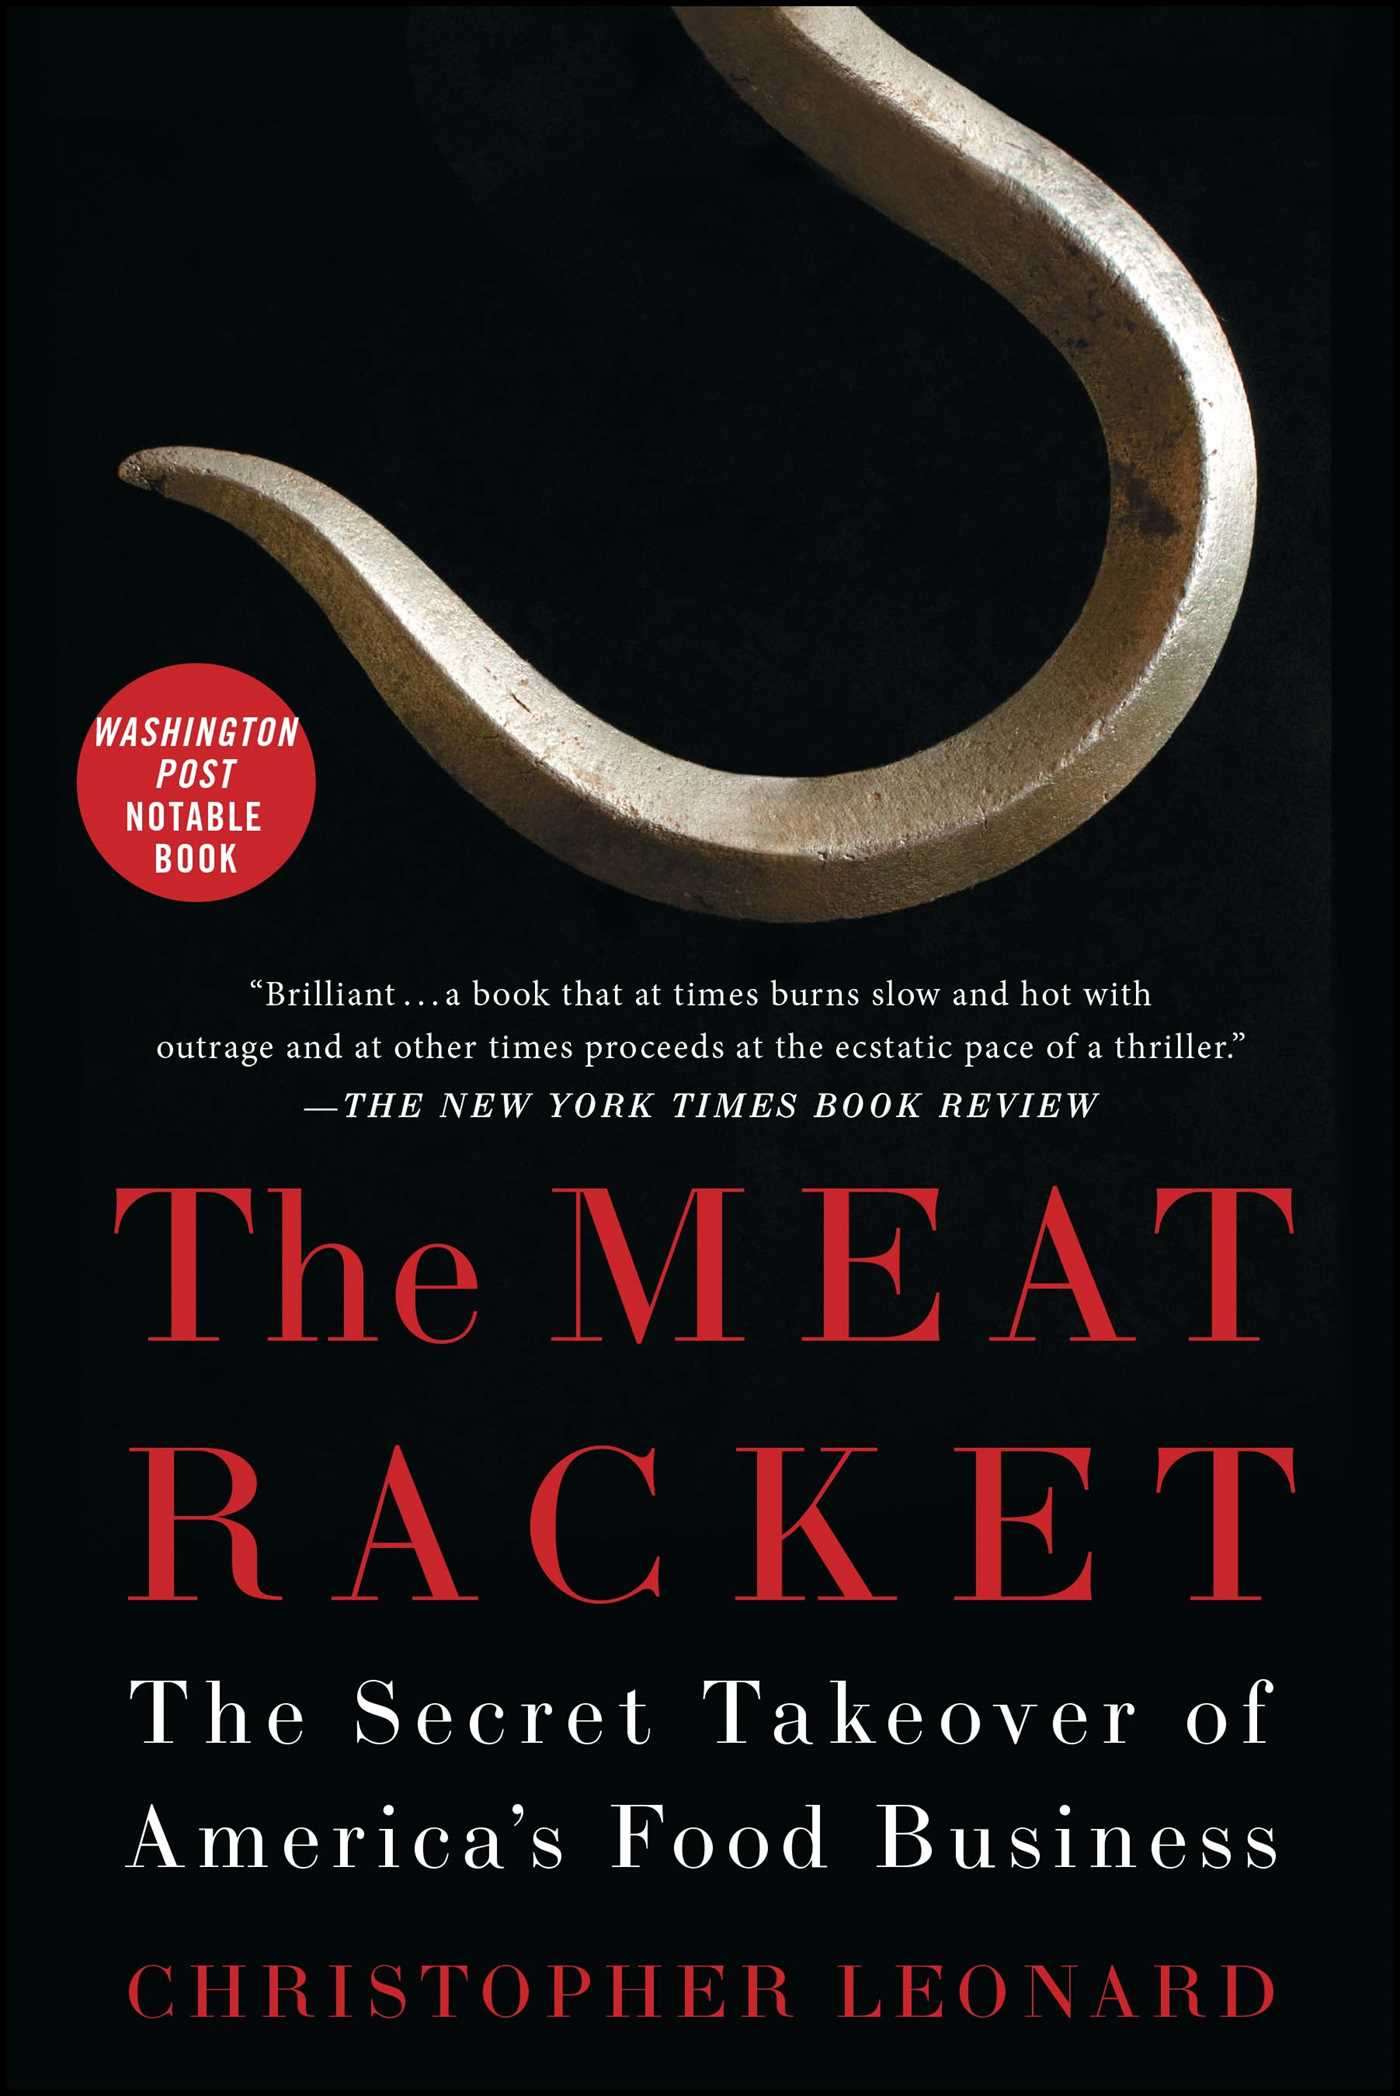 The meat racket 9781451645842 hr